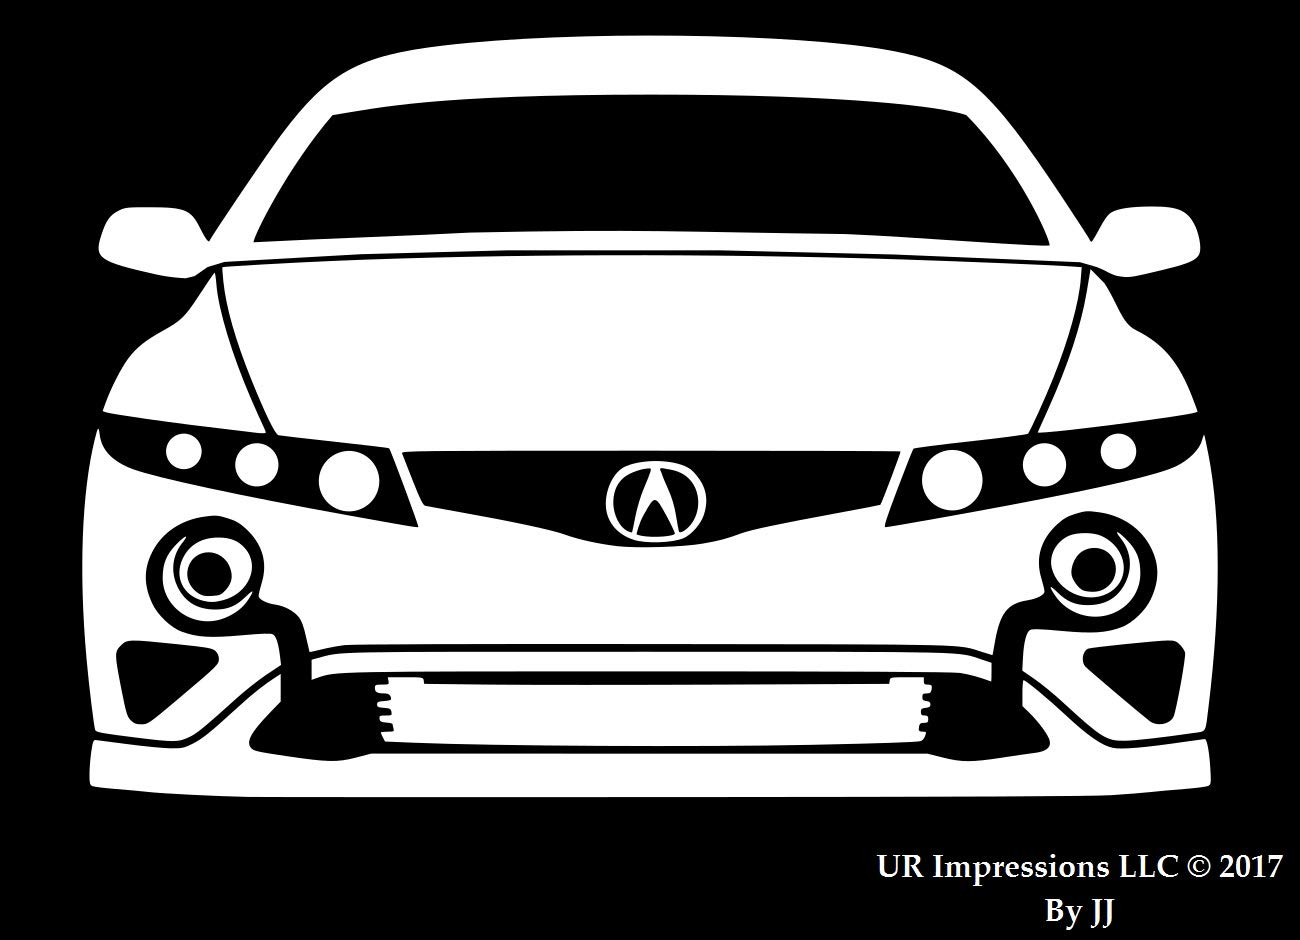 Twin turbo tuner front silhouette decal vinyl sticker graphics for acura tl integra rsx type s cars suv walls windows laptop tabletwhite7 5 x 5 inch